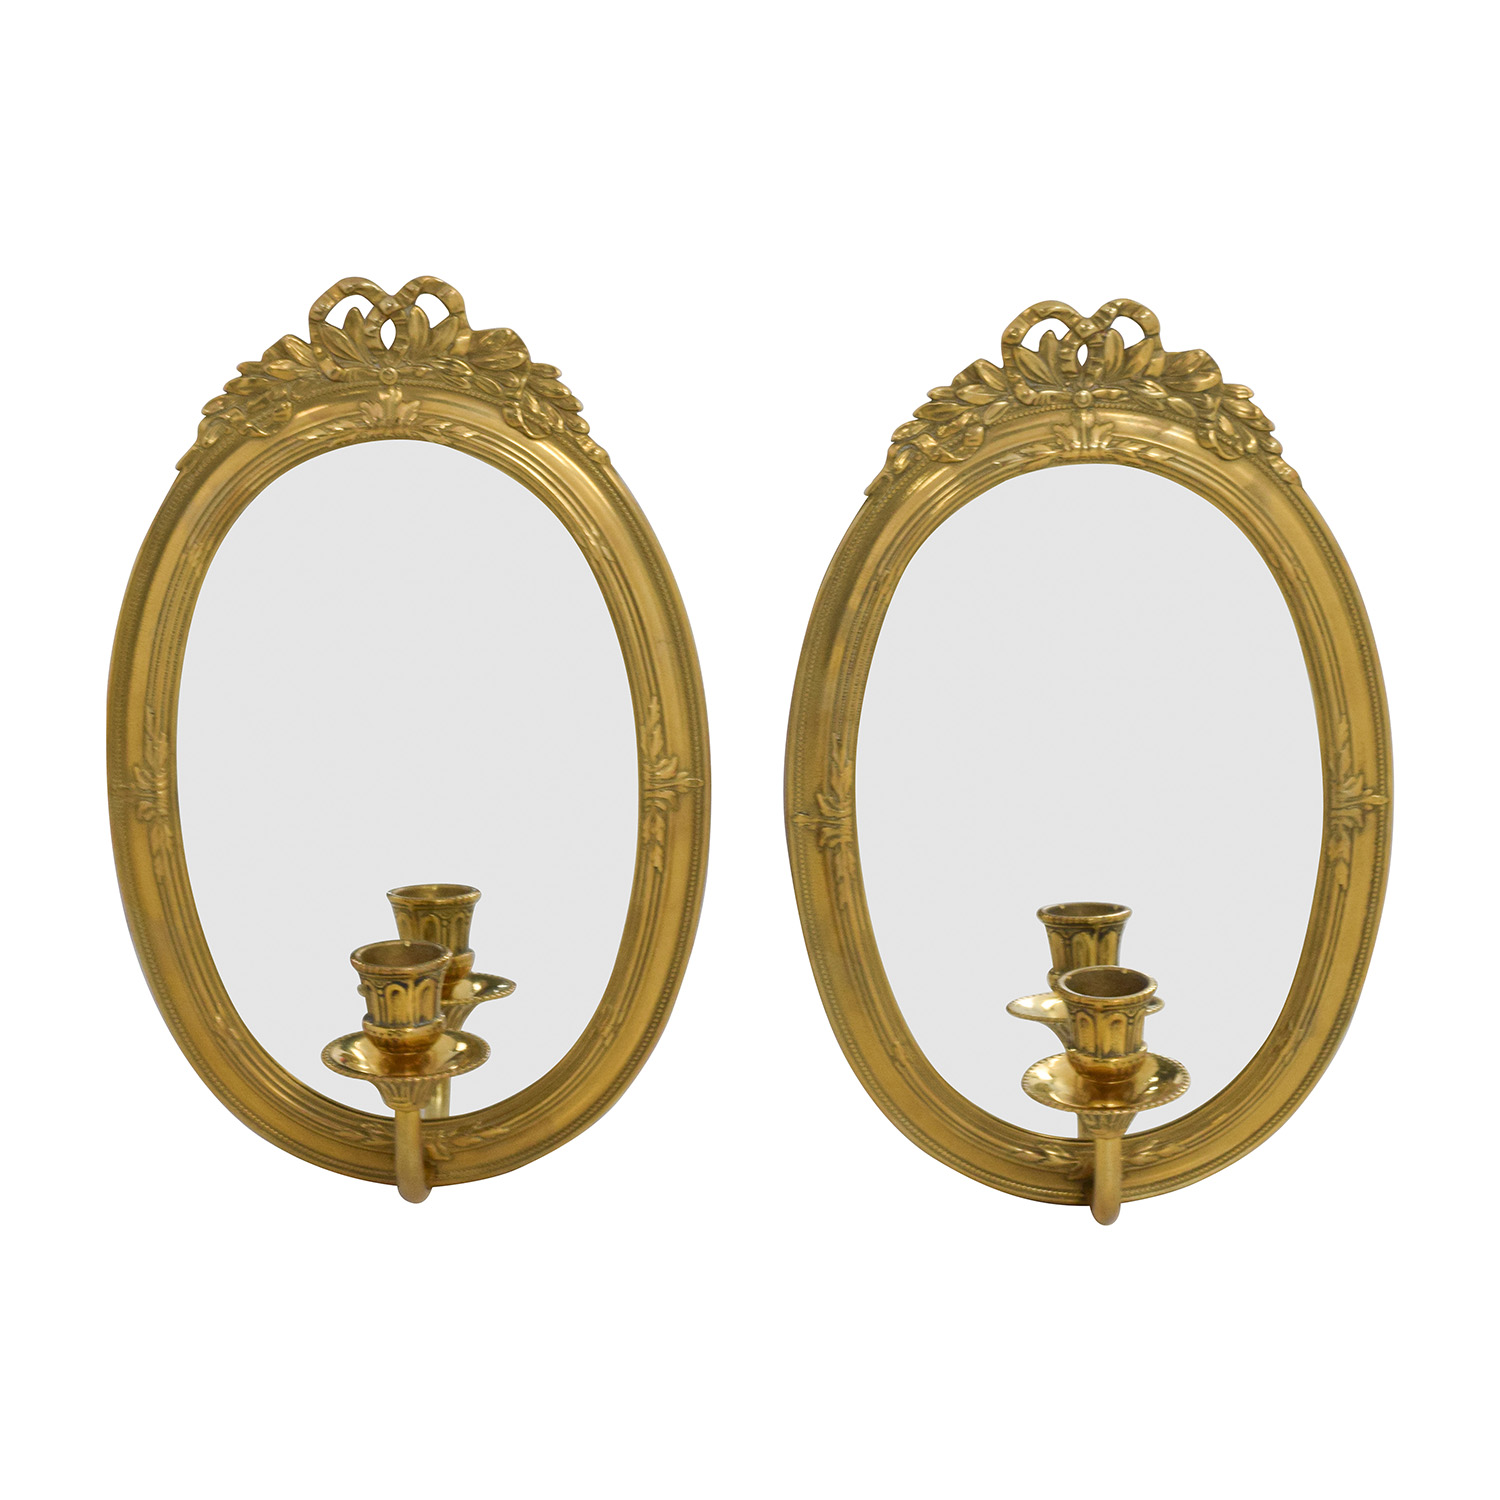 Vintage Gold Frame Wall Mirrors with Candle Holder / Mirrors